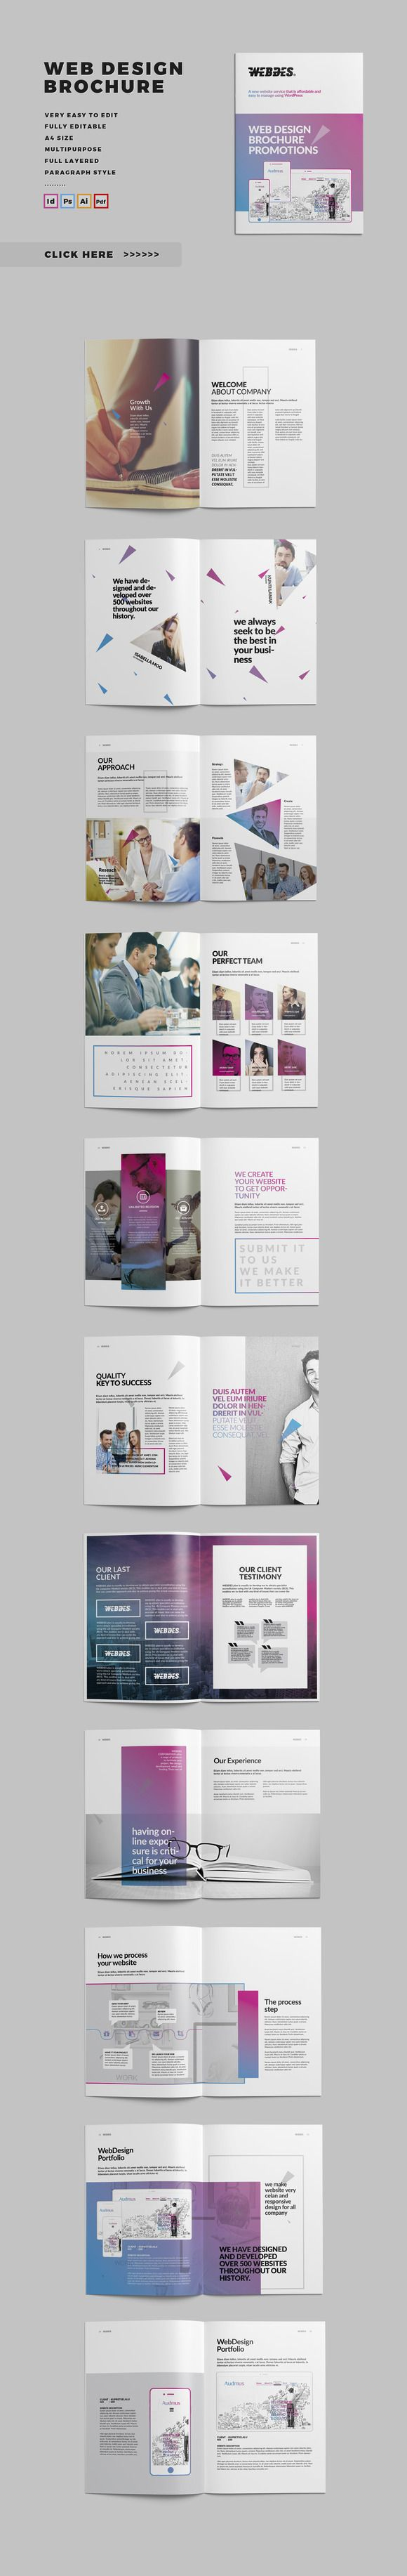 Web Design Brochure by @Graphicsauthor